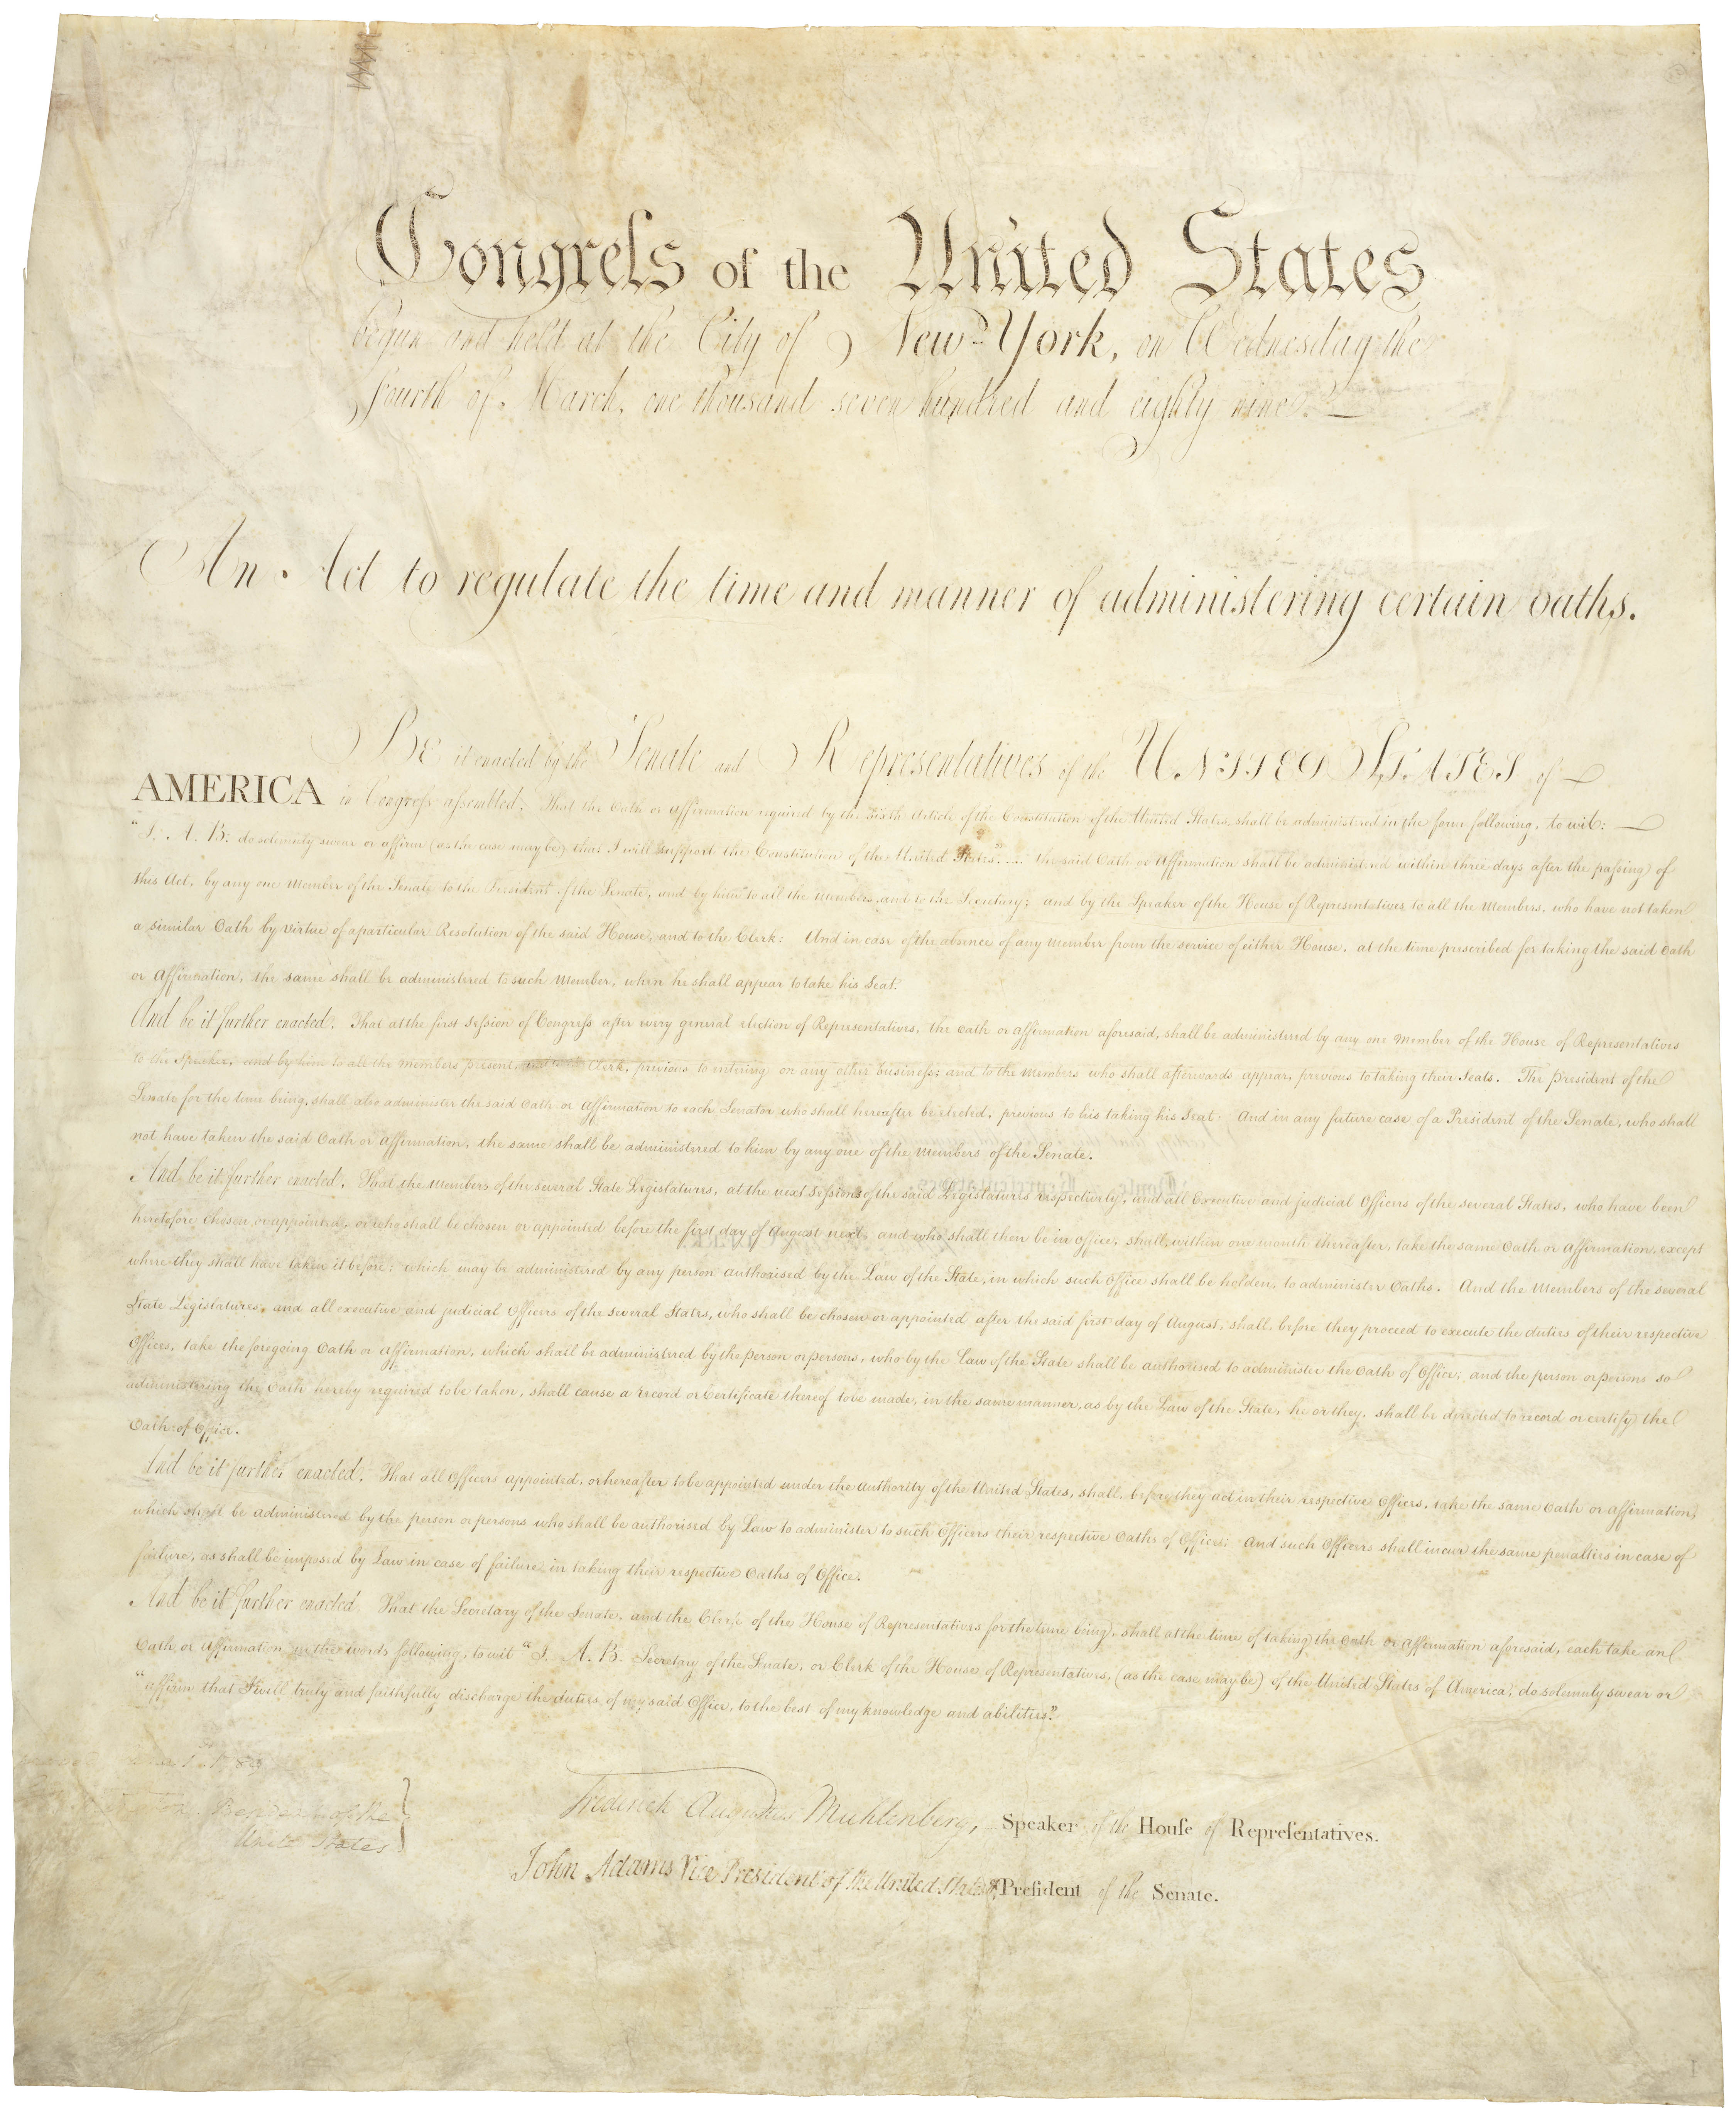 An Act to Regulate the Time and Manner of Administering Certain Oaths, June 1, 1789. Records of the General Government, National Archives. National Archives Identifier 596341